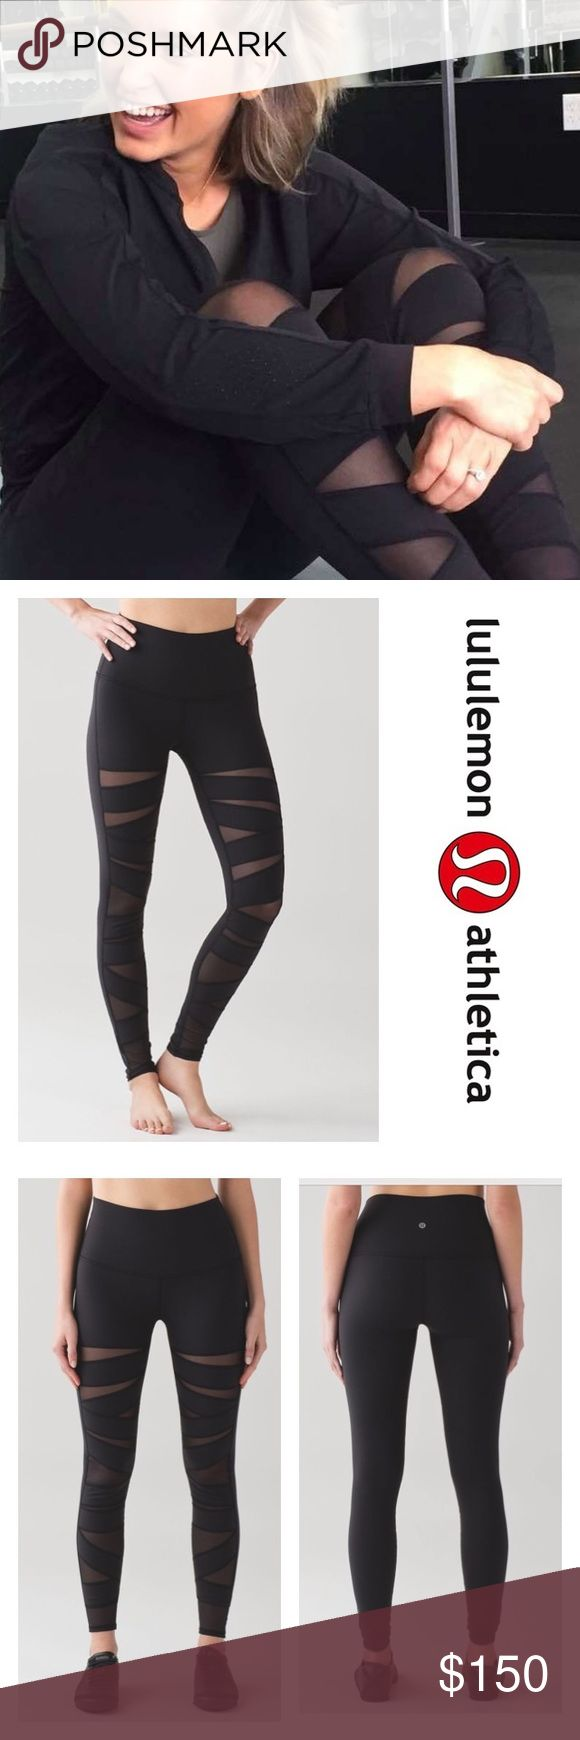 Lululemon Wunder Under Pant Hi-Rise SE Mesh Black They're back! This special edition of your favourite Wunder Under Pant has Mesh fabric panels for ventilation. A tight-knit version of our Luon® fabric, sweat-wicking Full-On® Luon is four-way stretch with a cottony-soft feel incredible support and coverage designed for yoga Added Lycra® fibre for stretch and shape retention high-rise Keeps you feeling covered and secure hugged sensation Engineered to feel like a comfortable embrace…